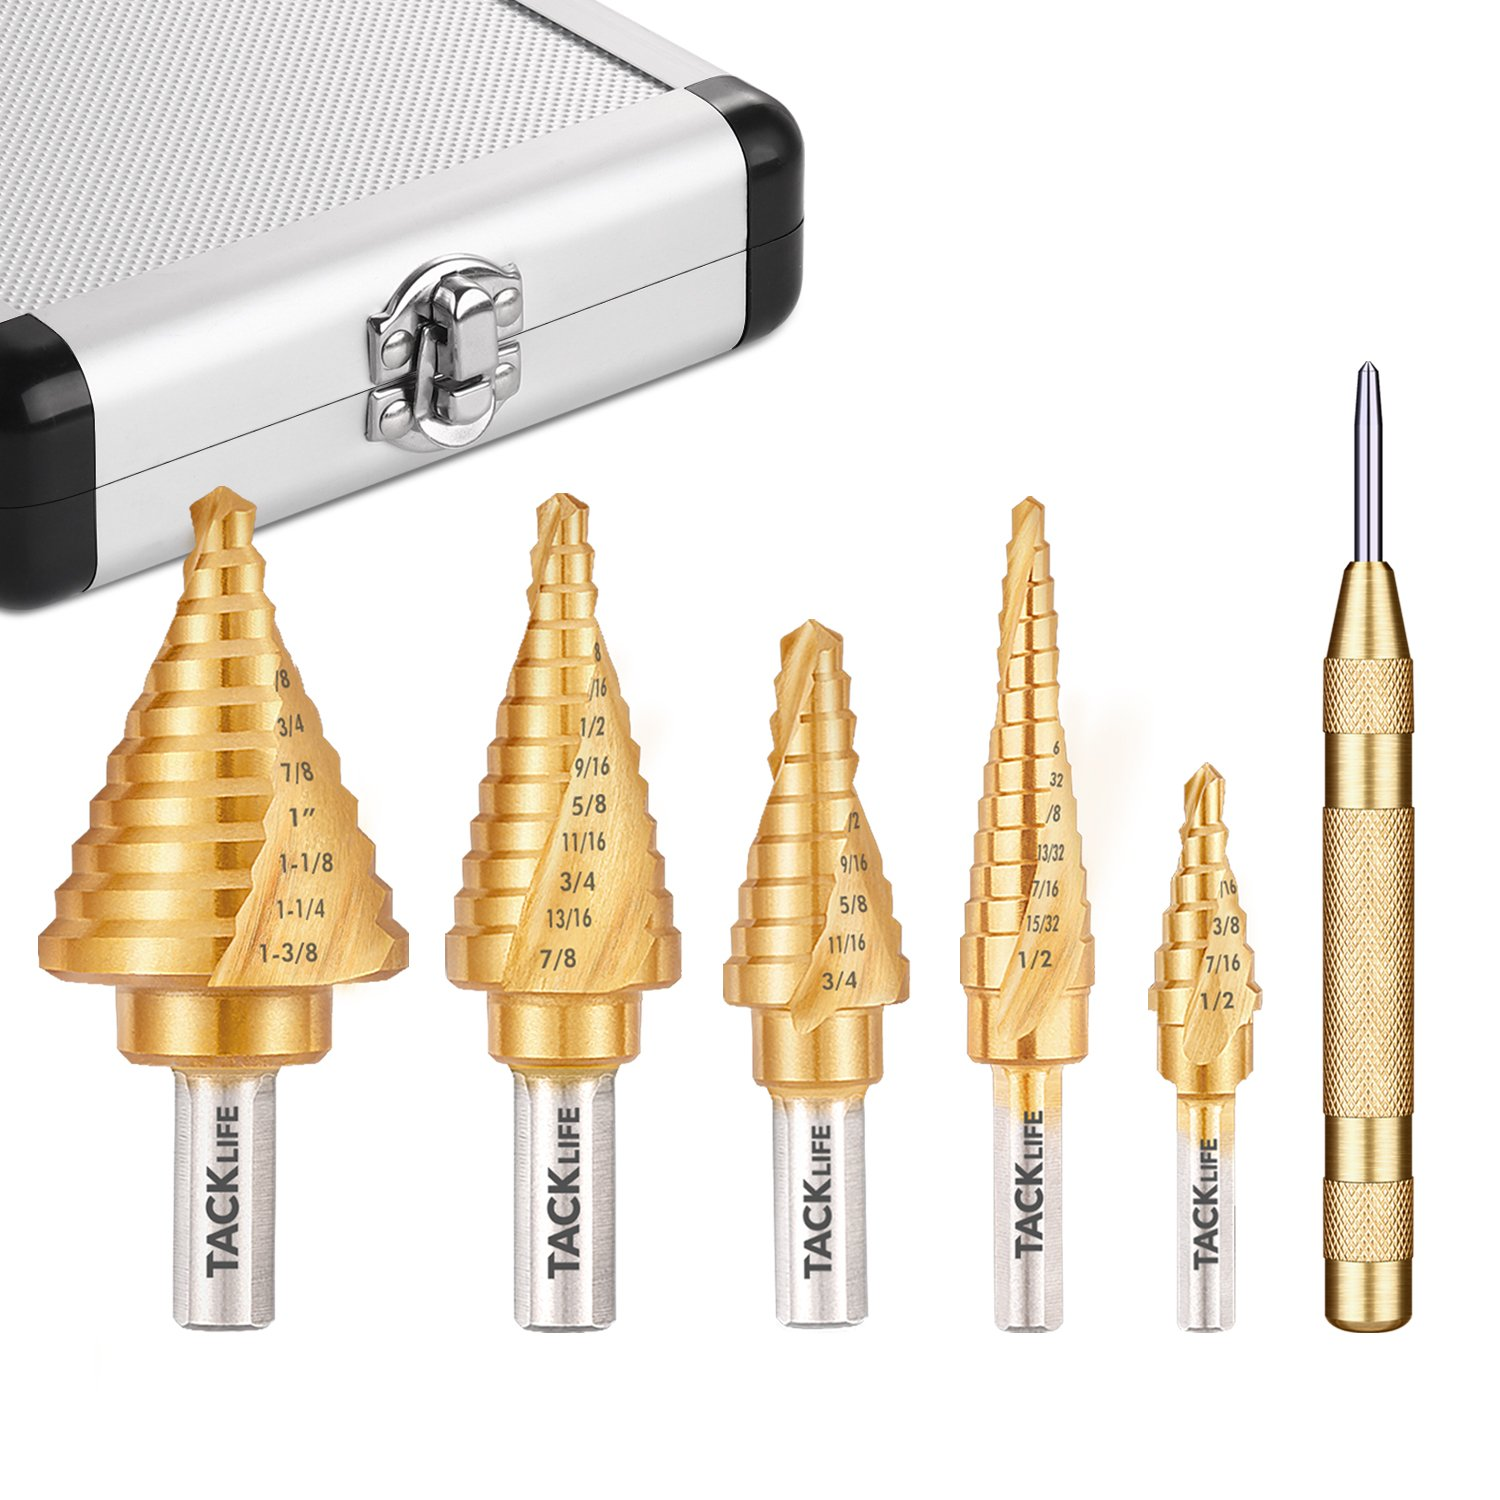 Step Drill Bit Set, Tacklife PSD4 Titanium Spiral Grooved Drill Bit & Automatic Center Punch, Double Cutting Blades, X-Type Opening, Laser Marking|5-Piece Set|Total 50 Sizes